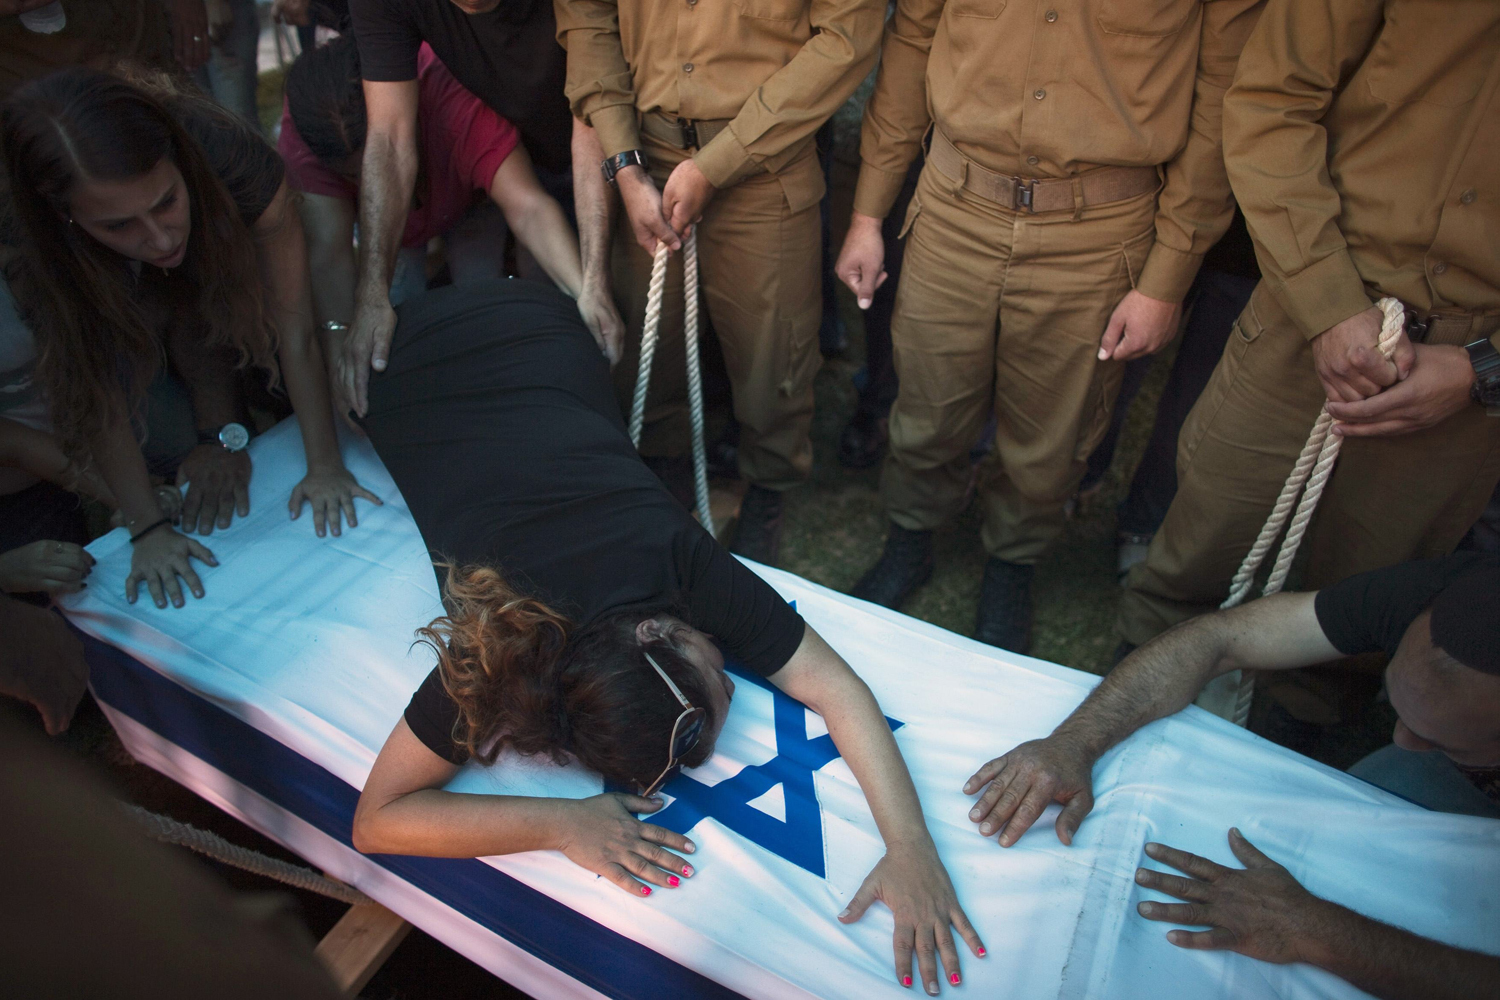 Jul. 22, 2014. The mother of Israeli soldier Tal Yifrah mourns over his flag-covered coffin during his funeral in Rishon Lezion near Tel Aviv.